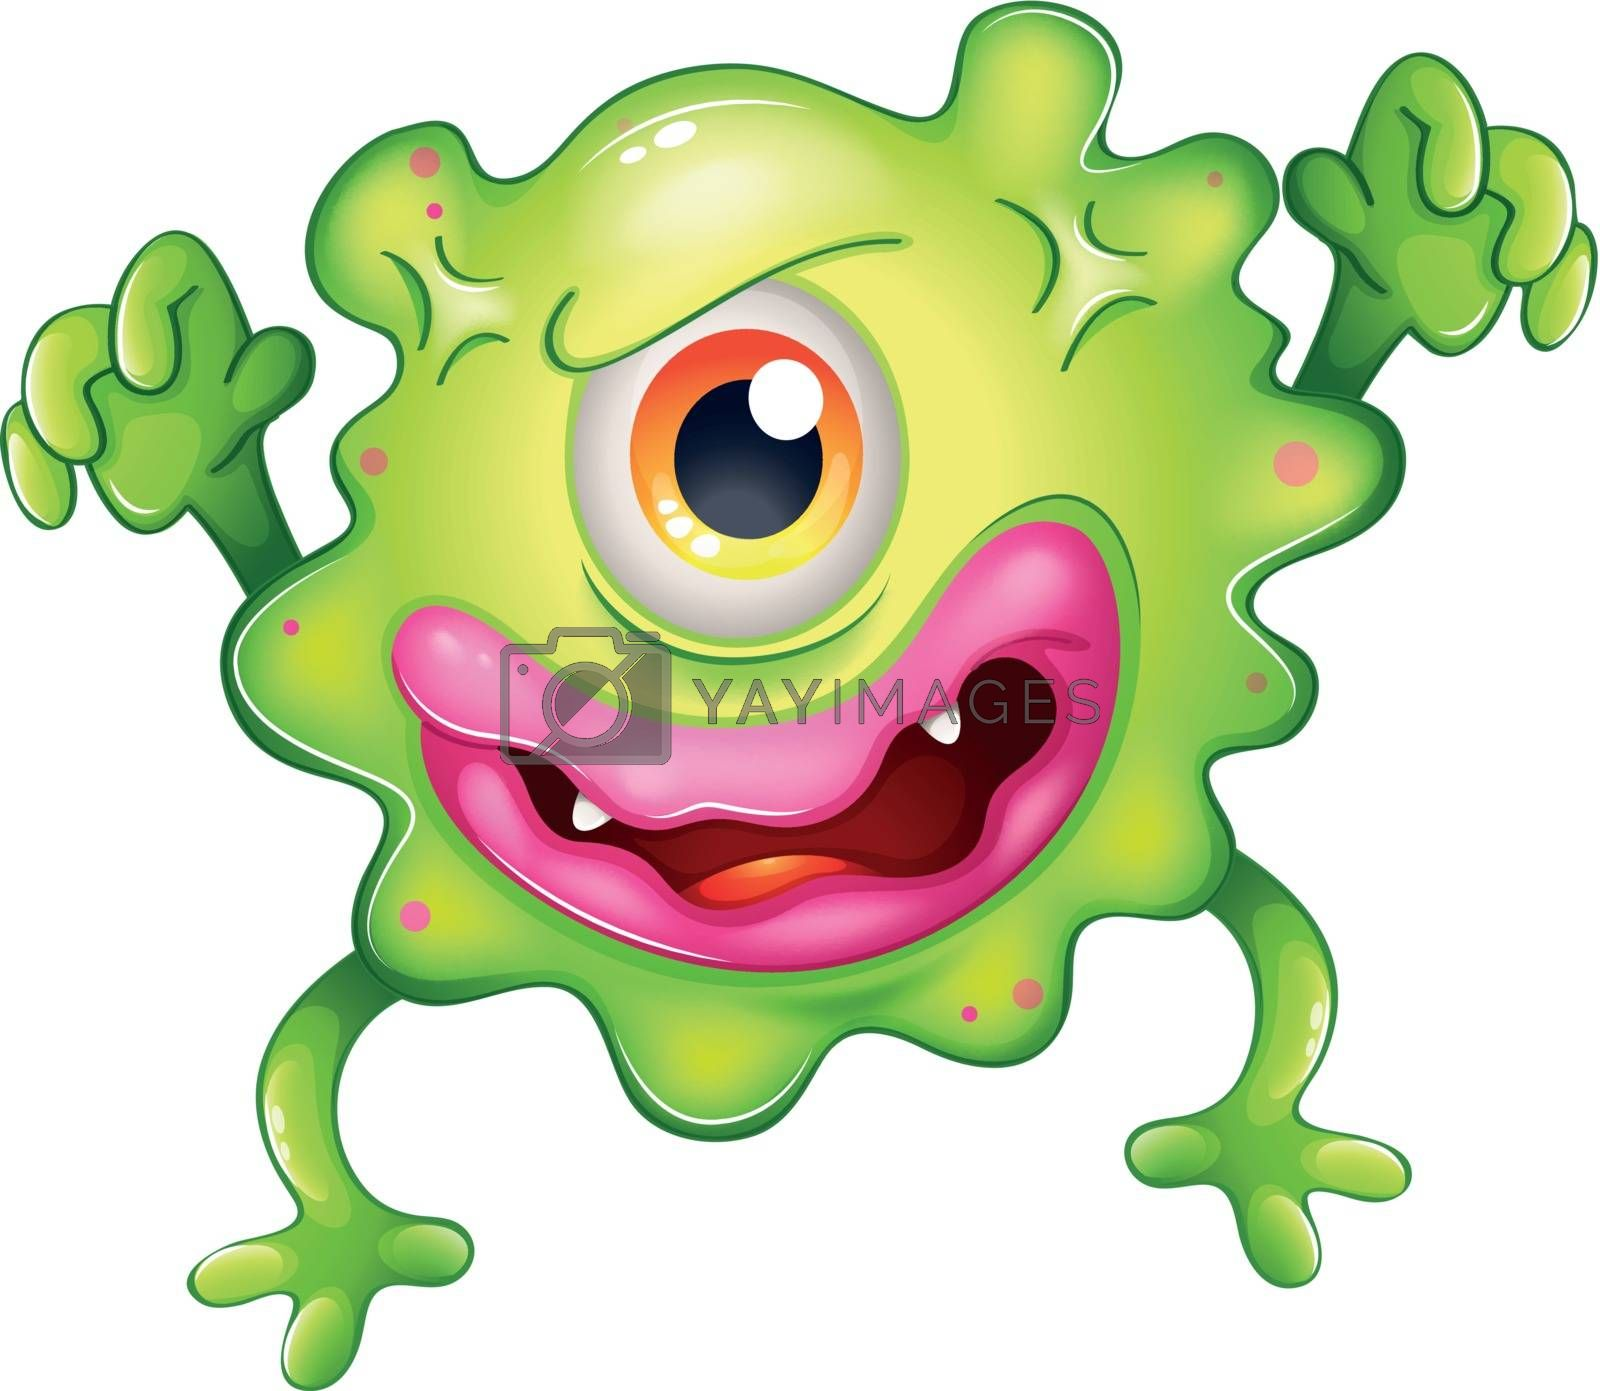 Illustration of an angry green one-eyed monster on a white background